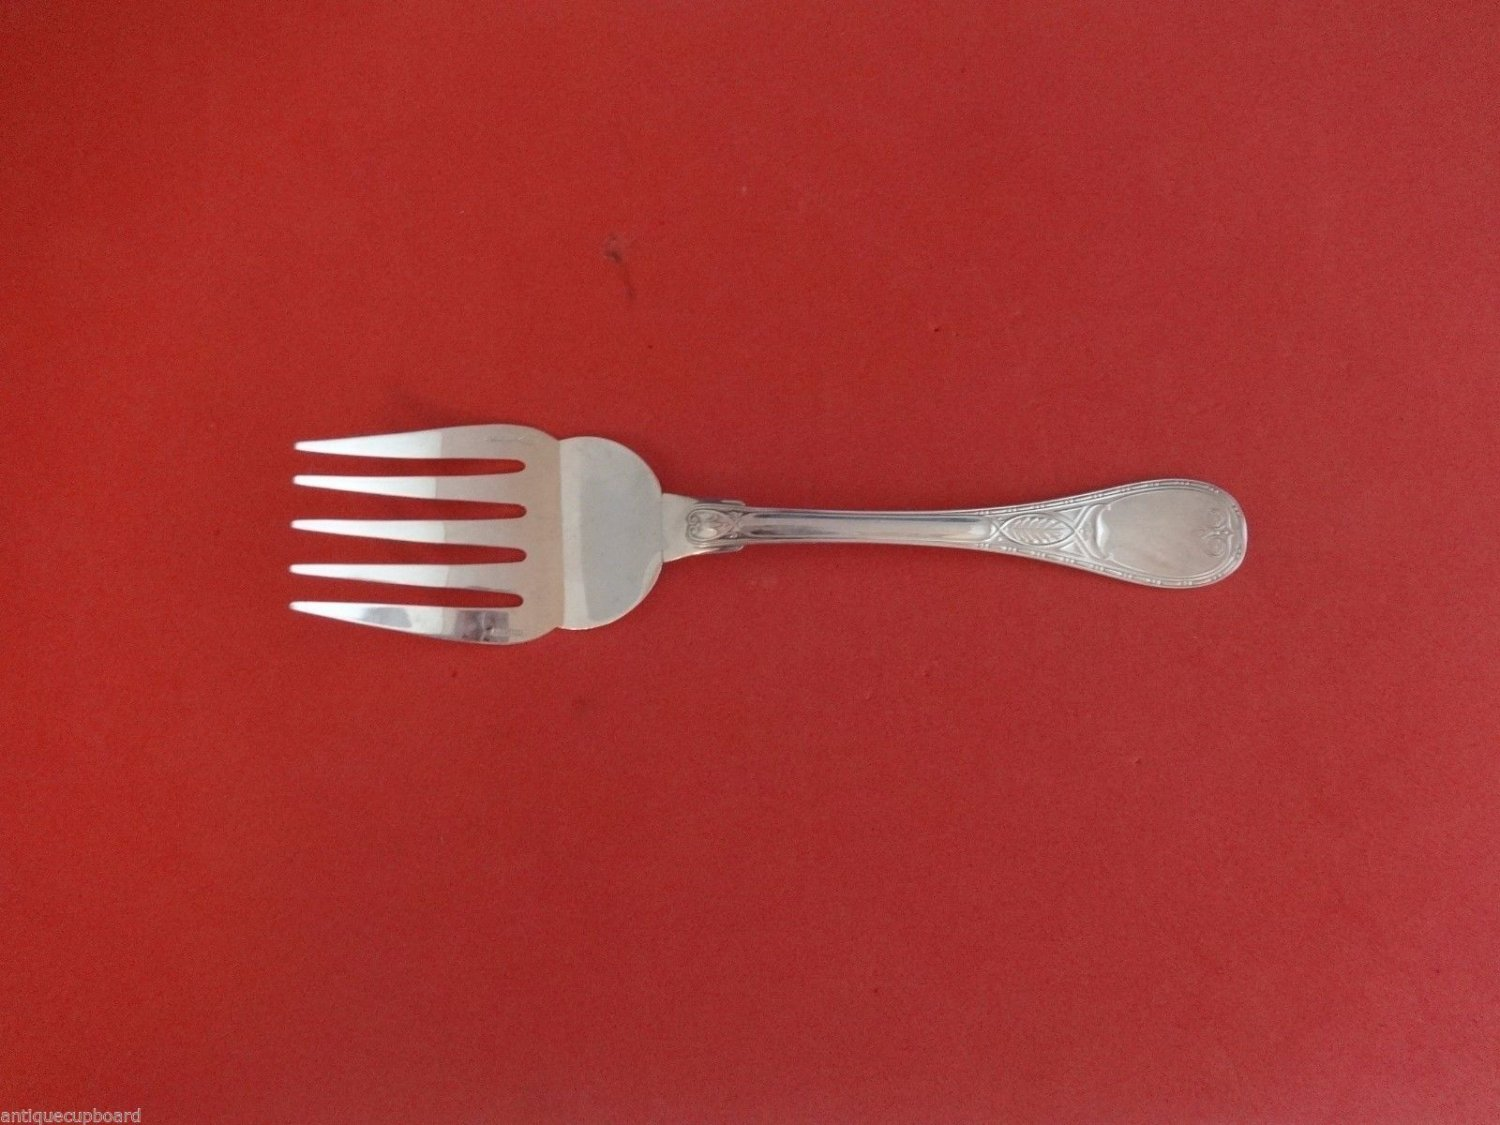 Brienne by Christofle Sterling Silver Fish Serving Fork 5-Tine 8 3/4""